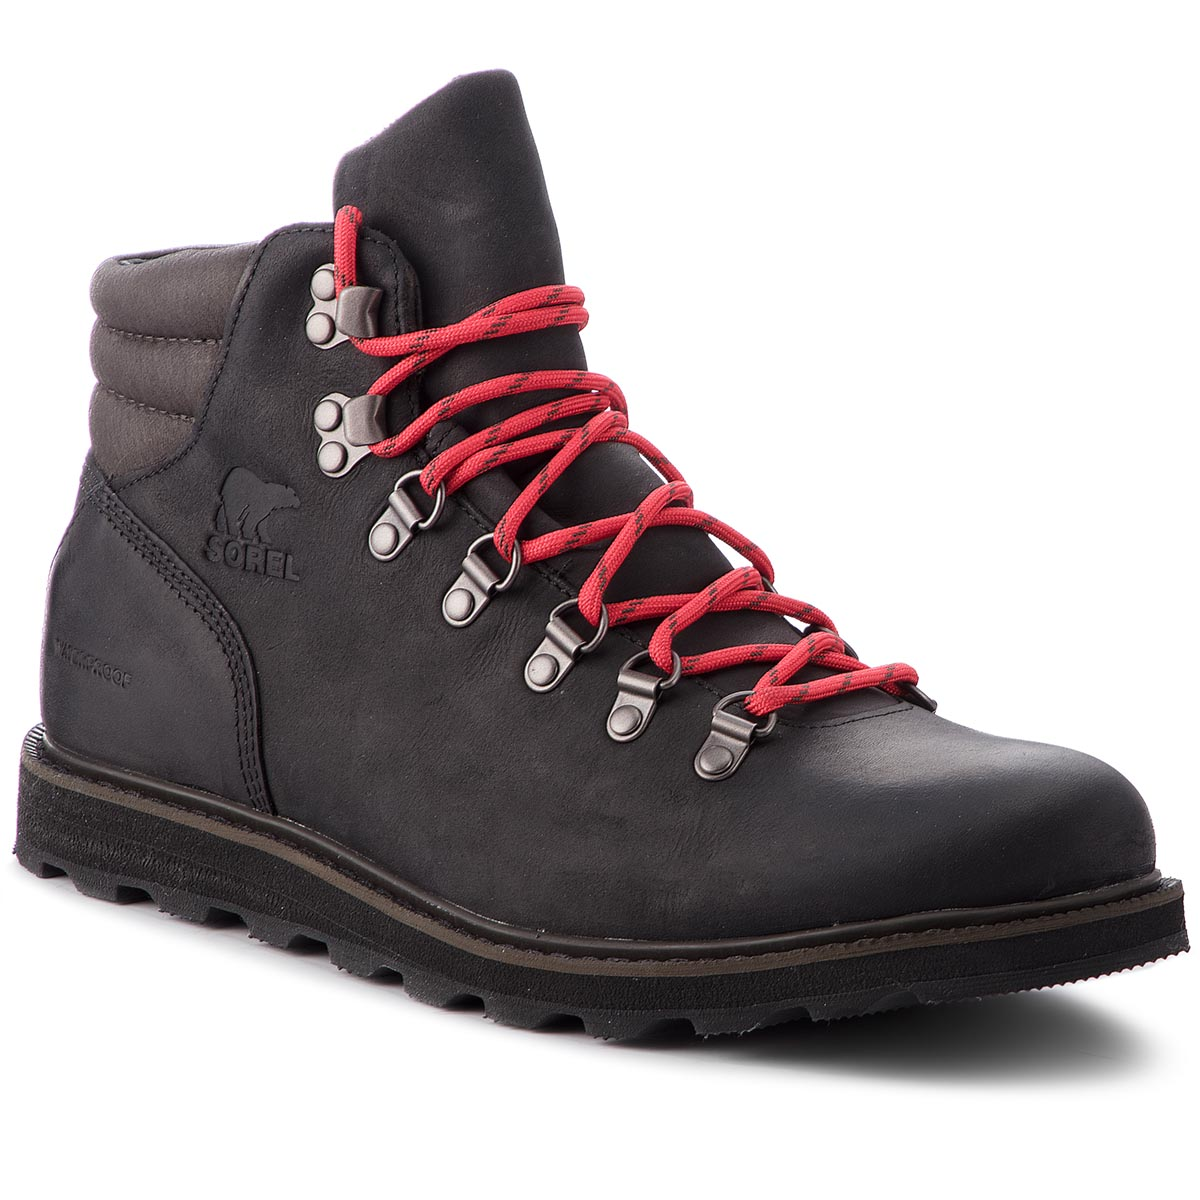 Ghete SOREL - Madson Hiker Waterproof NM2620 Black 010